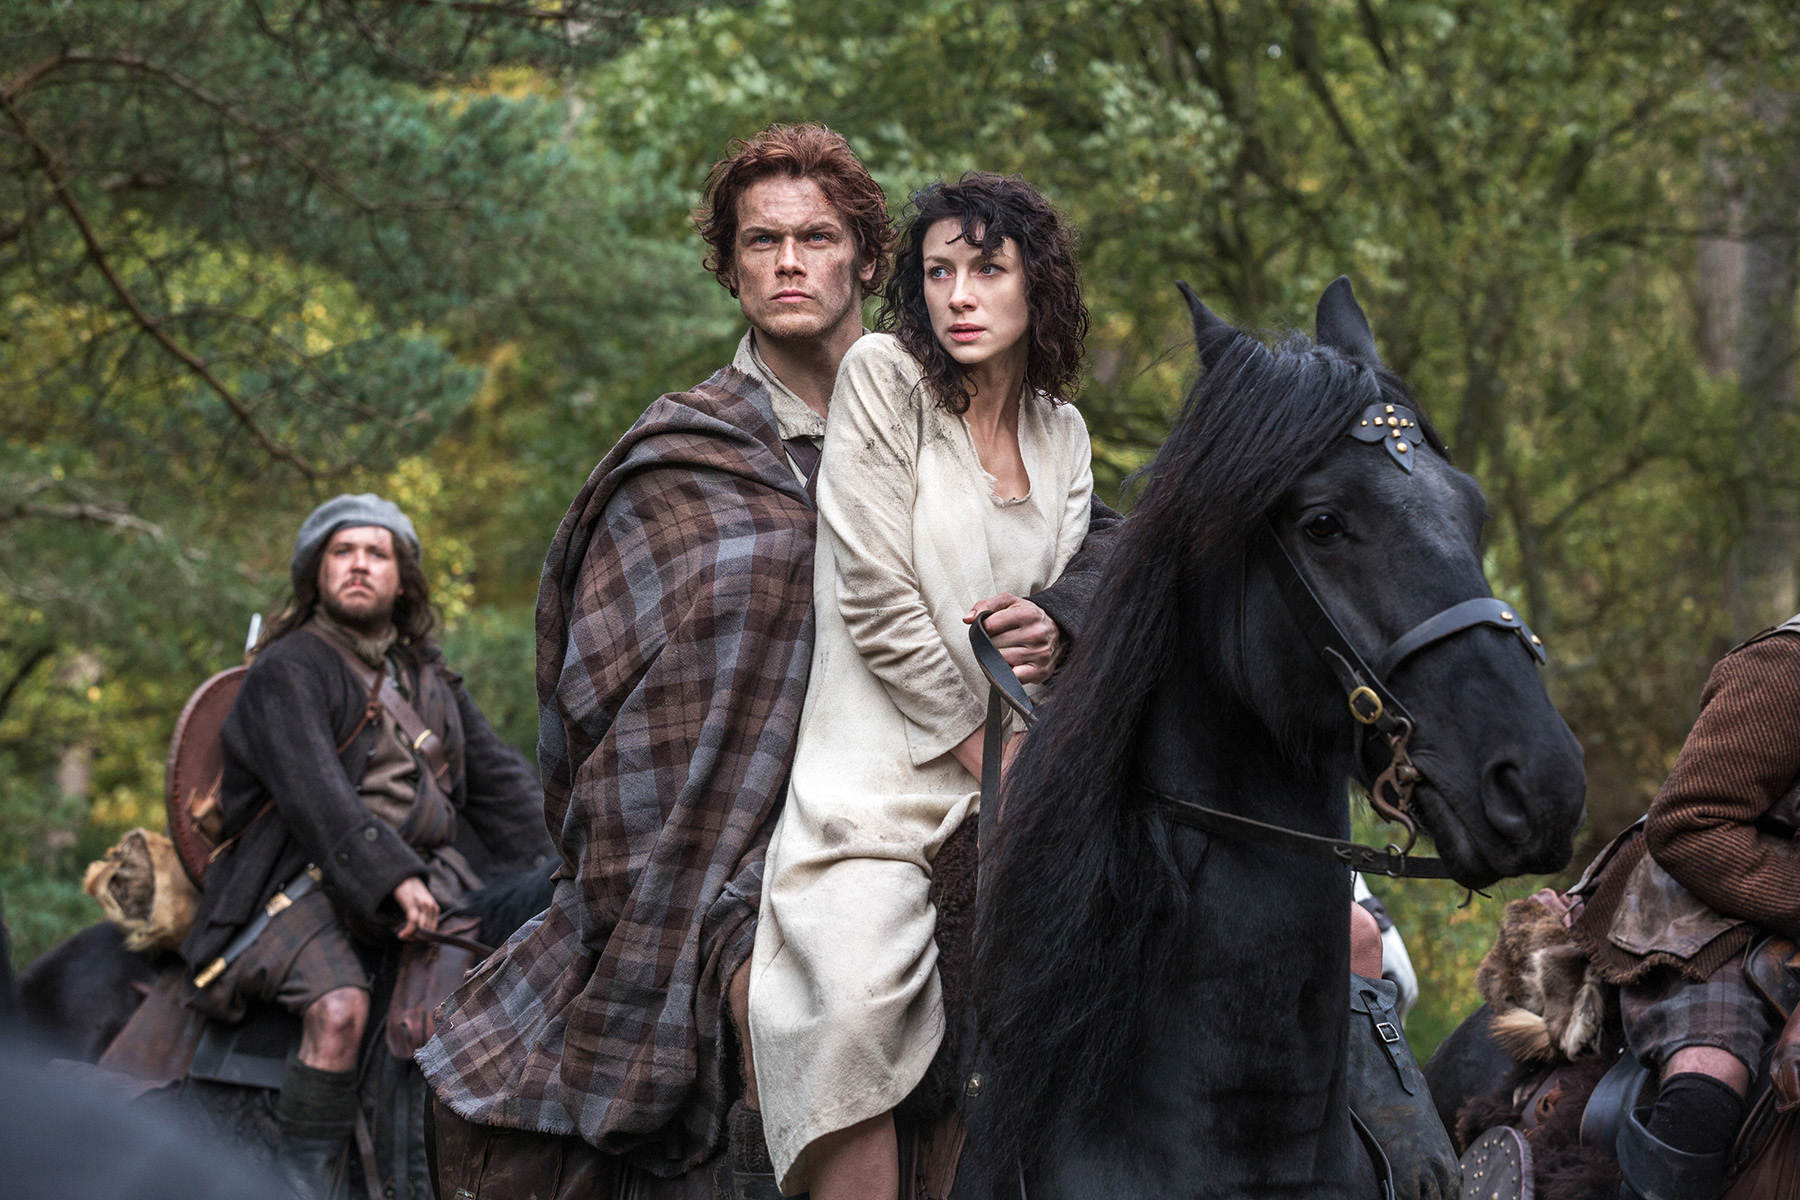 Caitriona Balfe and Sam Heughan in Outlander (AP Photo/Sony Pictures Television, Ed Miller, File)